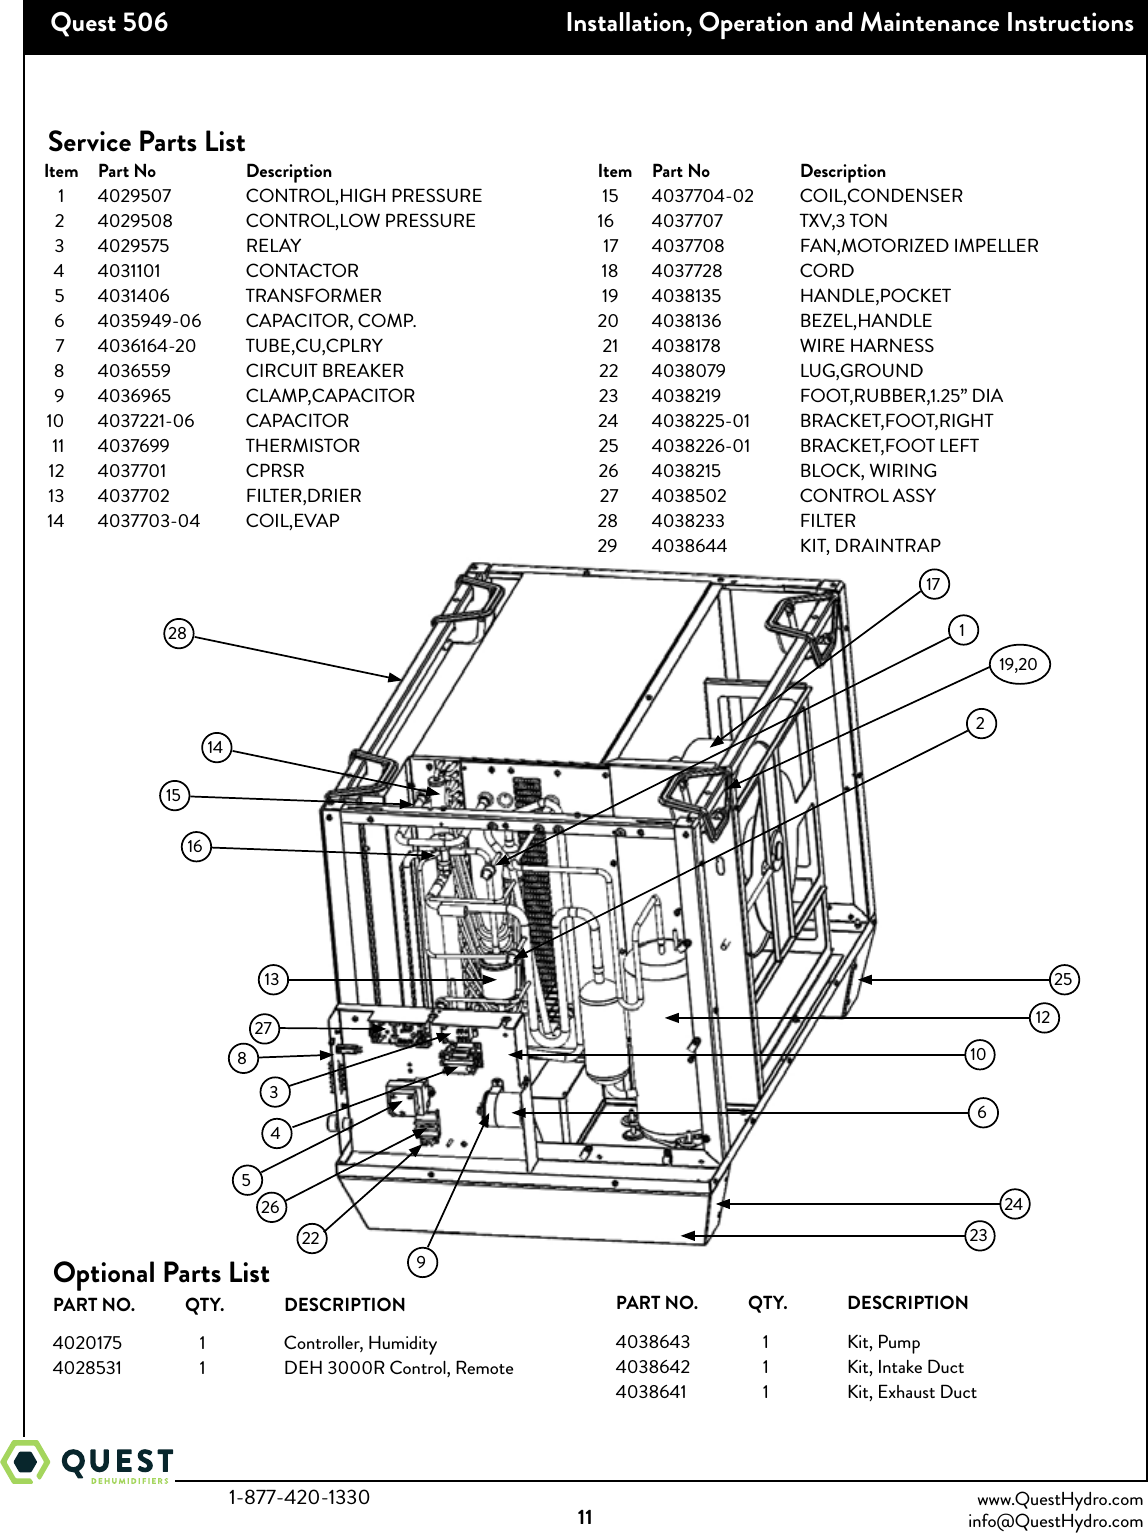 700950 Manual Dehumidifier Wiring Diagram Page 11 Of 12